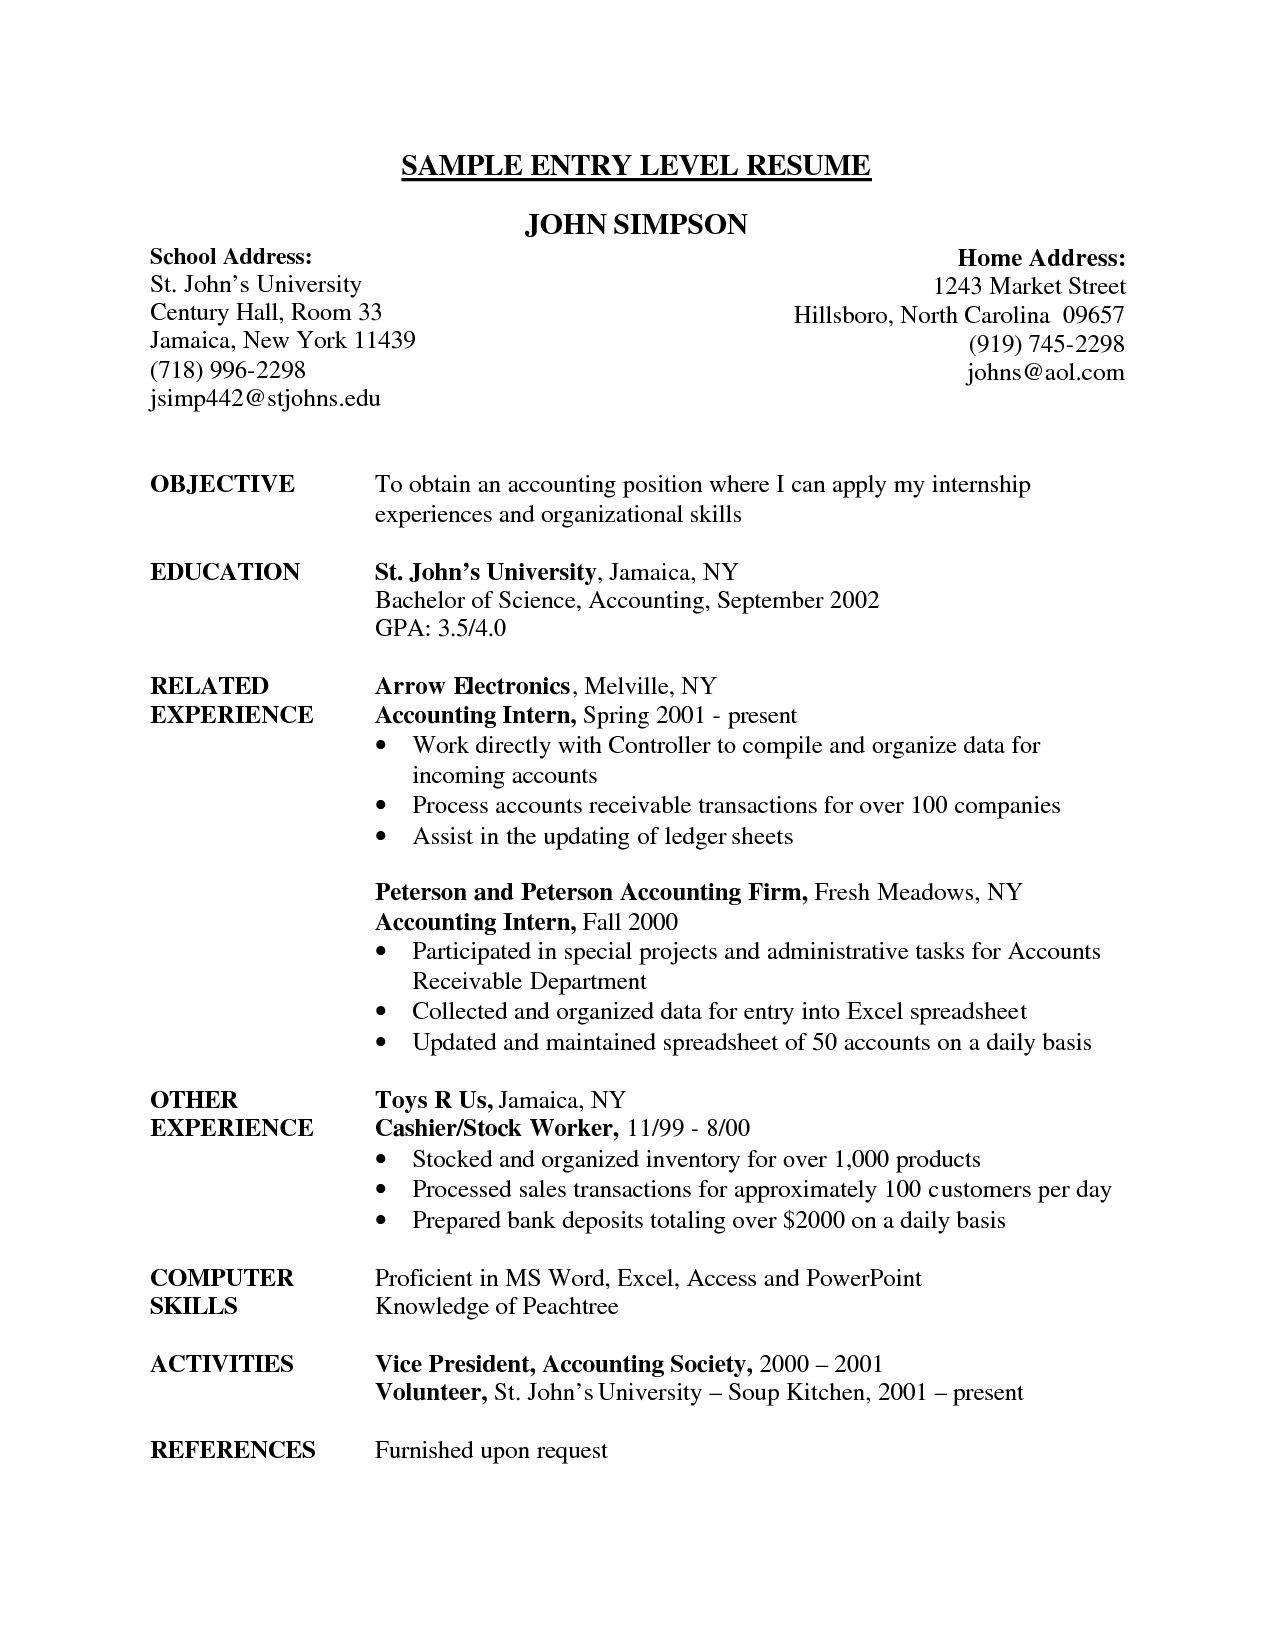 Career Objective Statement Examples Enchanting Resume Examples Entry Level  Resume Examples  Pinterest  Resume .